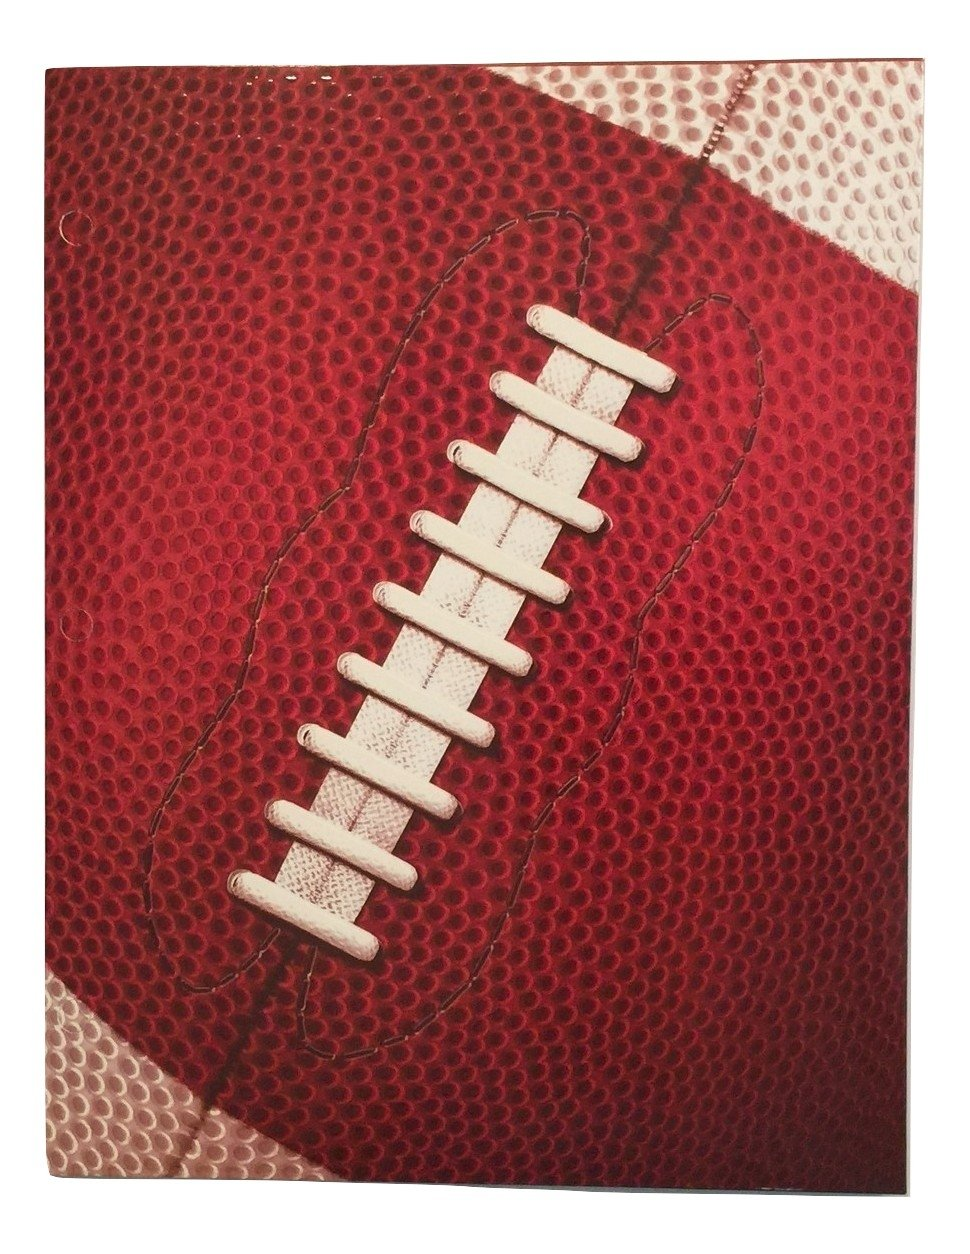 Promarx Two Pocket 3D Sports Folder ~ Football (Textured Cowhide and Lacing)